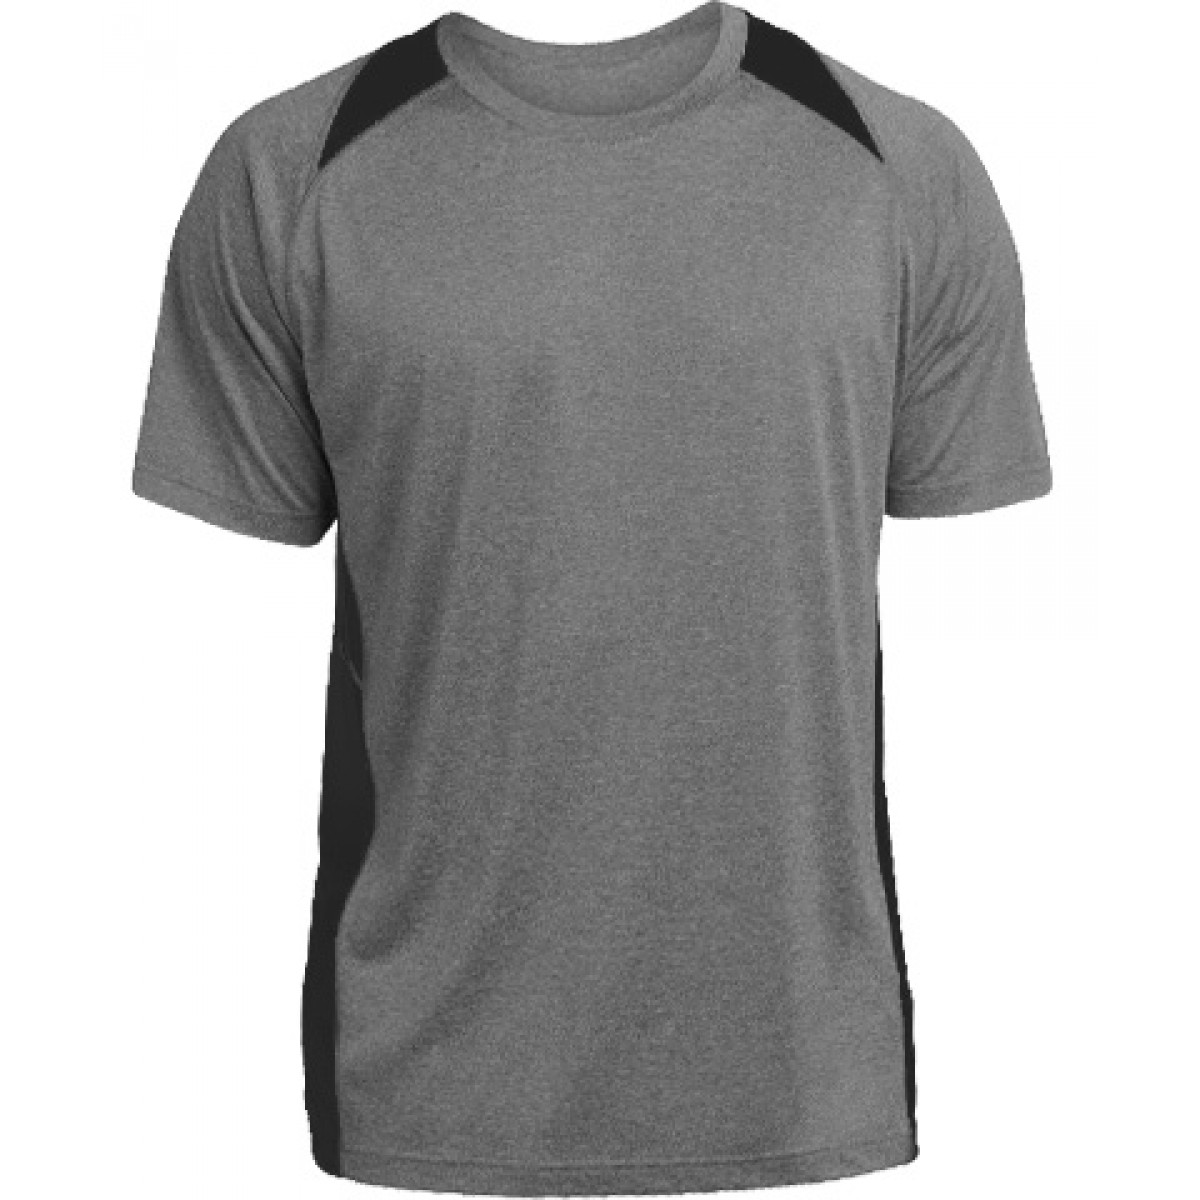 Heather Colorblock Contender™ Tee-Gray/Black-2XL